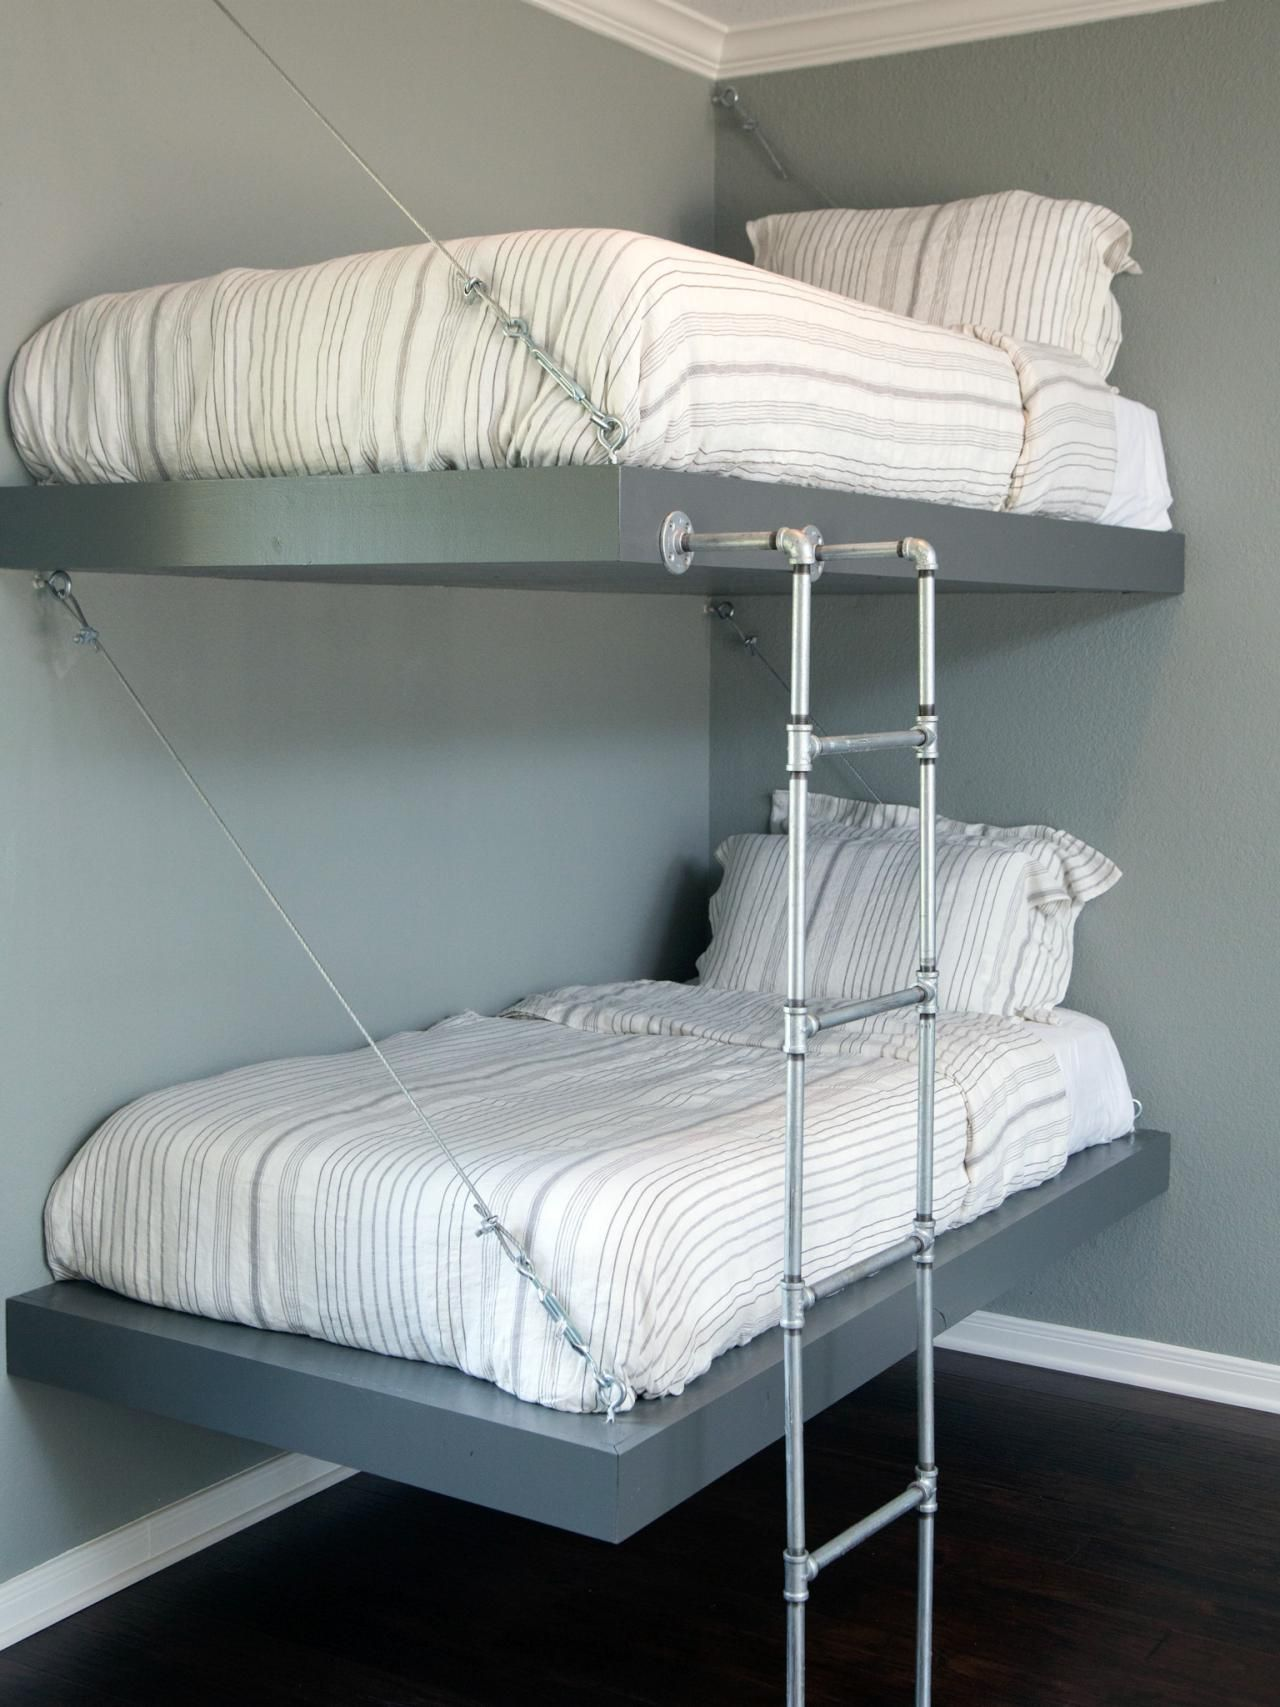 Pin By Home Design X On Bunk Beds Bunk Beds Bunk Beds With Stairs Modern Bunk Beds